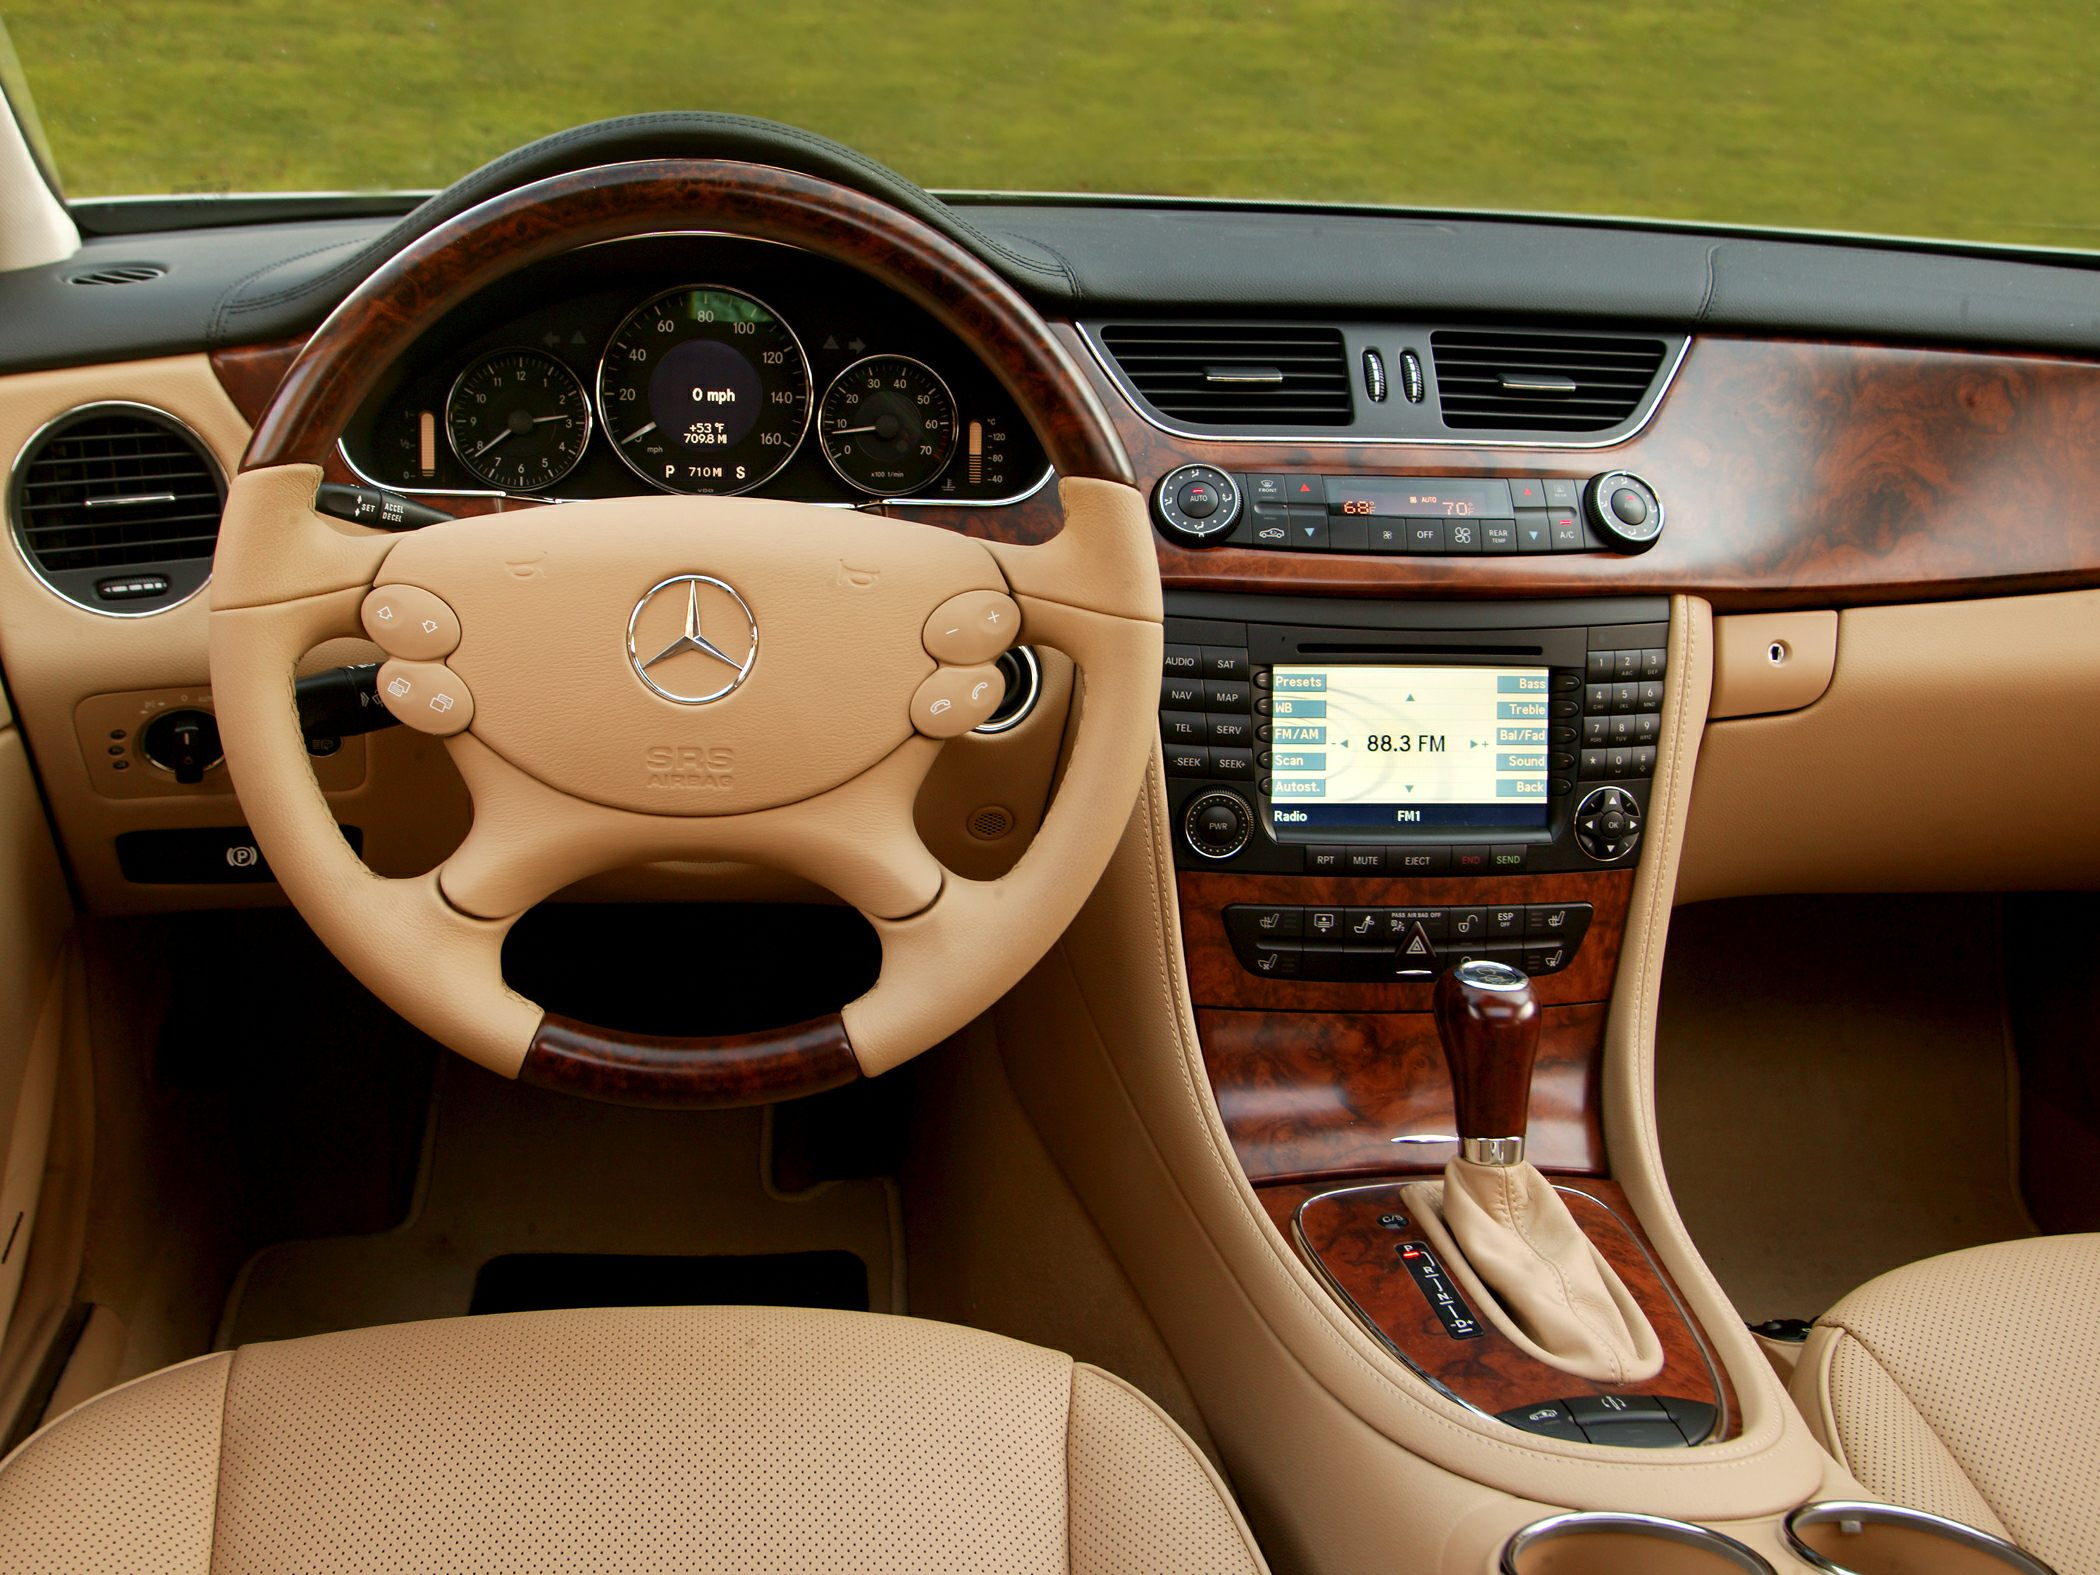 2007 Mercedes-Benz CLS550 For Sale   Review and Rating - CarsDirect